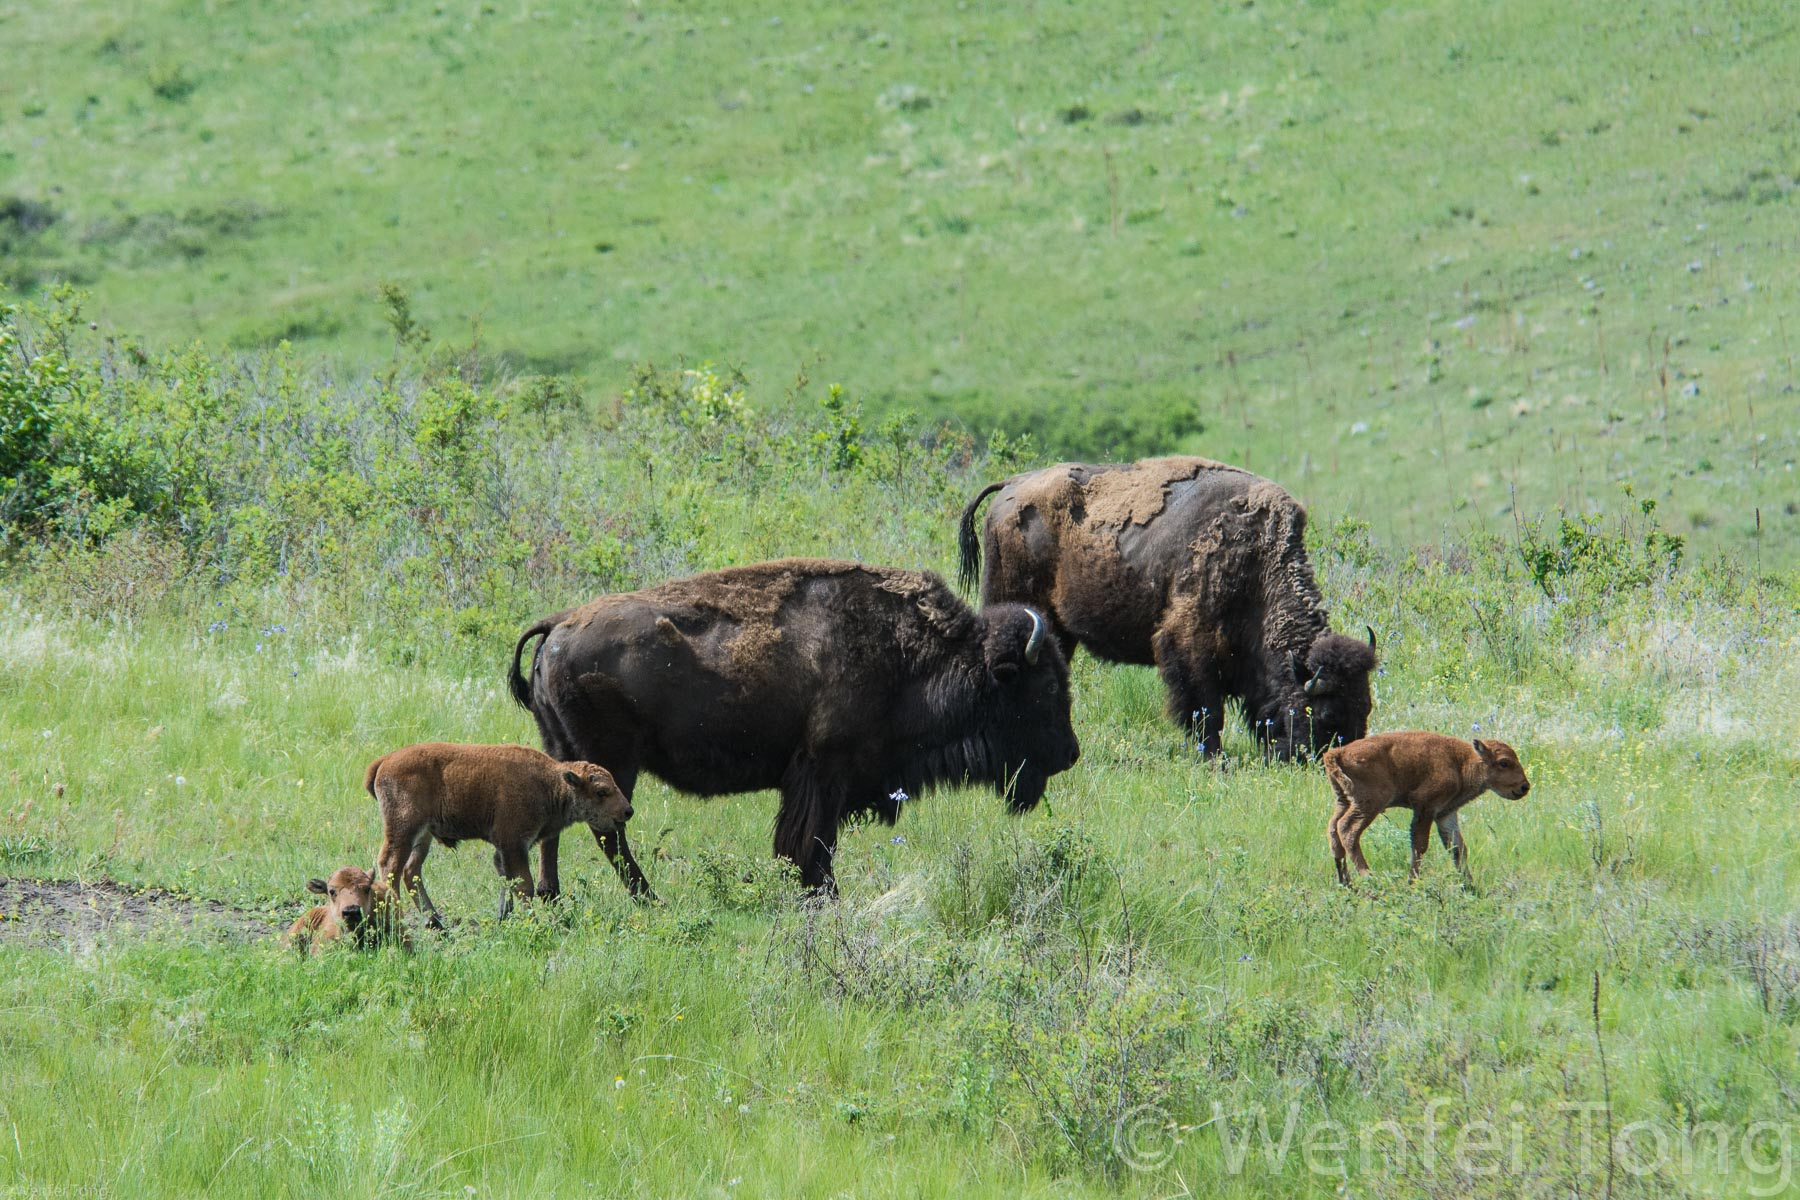 Bison cows with young calves